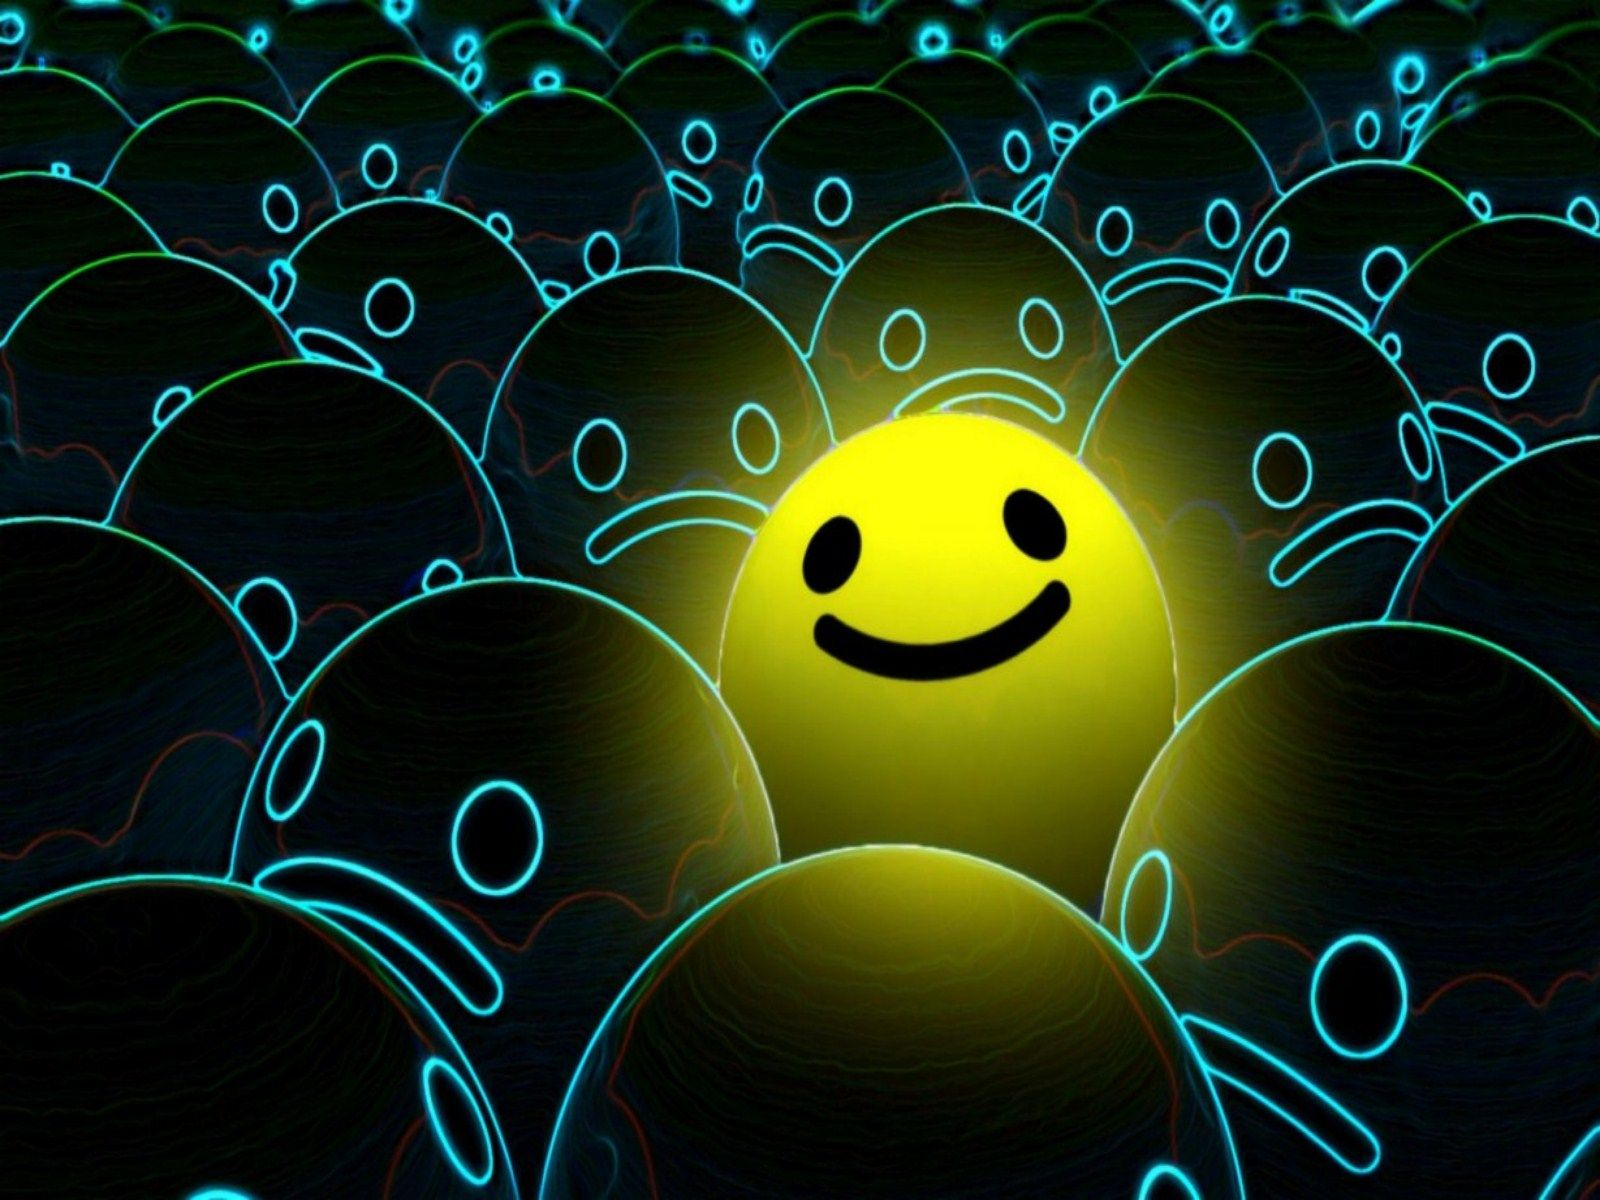 Smiley Face Blue Hd Wallpapers Desktop Background: Smileys Phone Backgrounds On Wallpaper How To Draw A